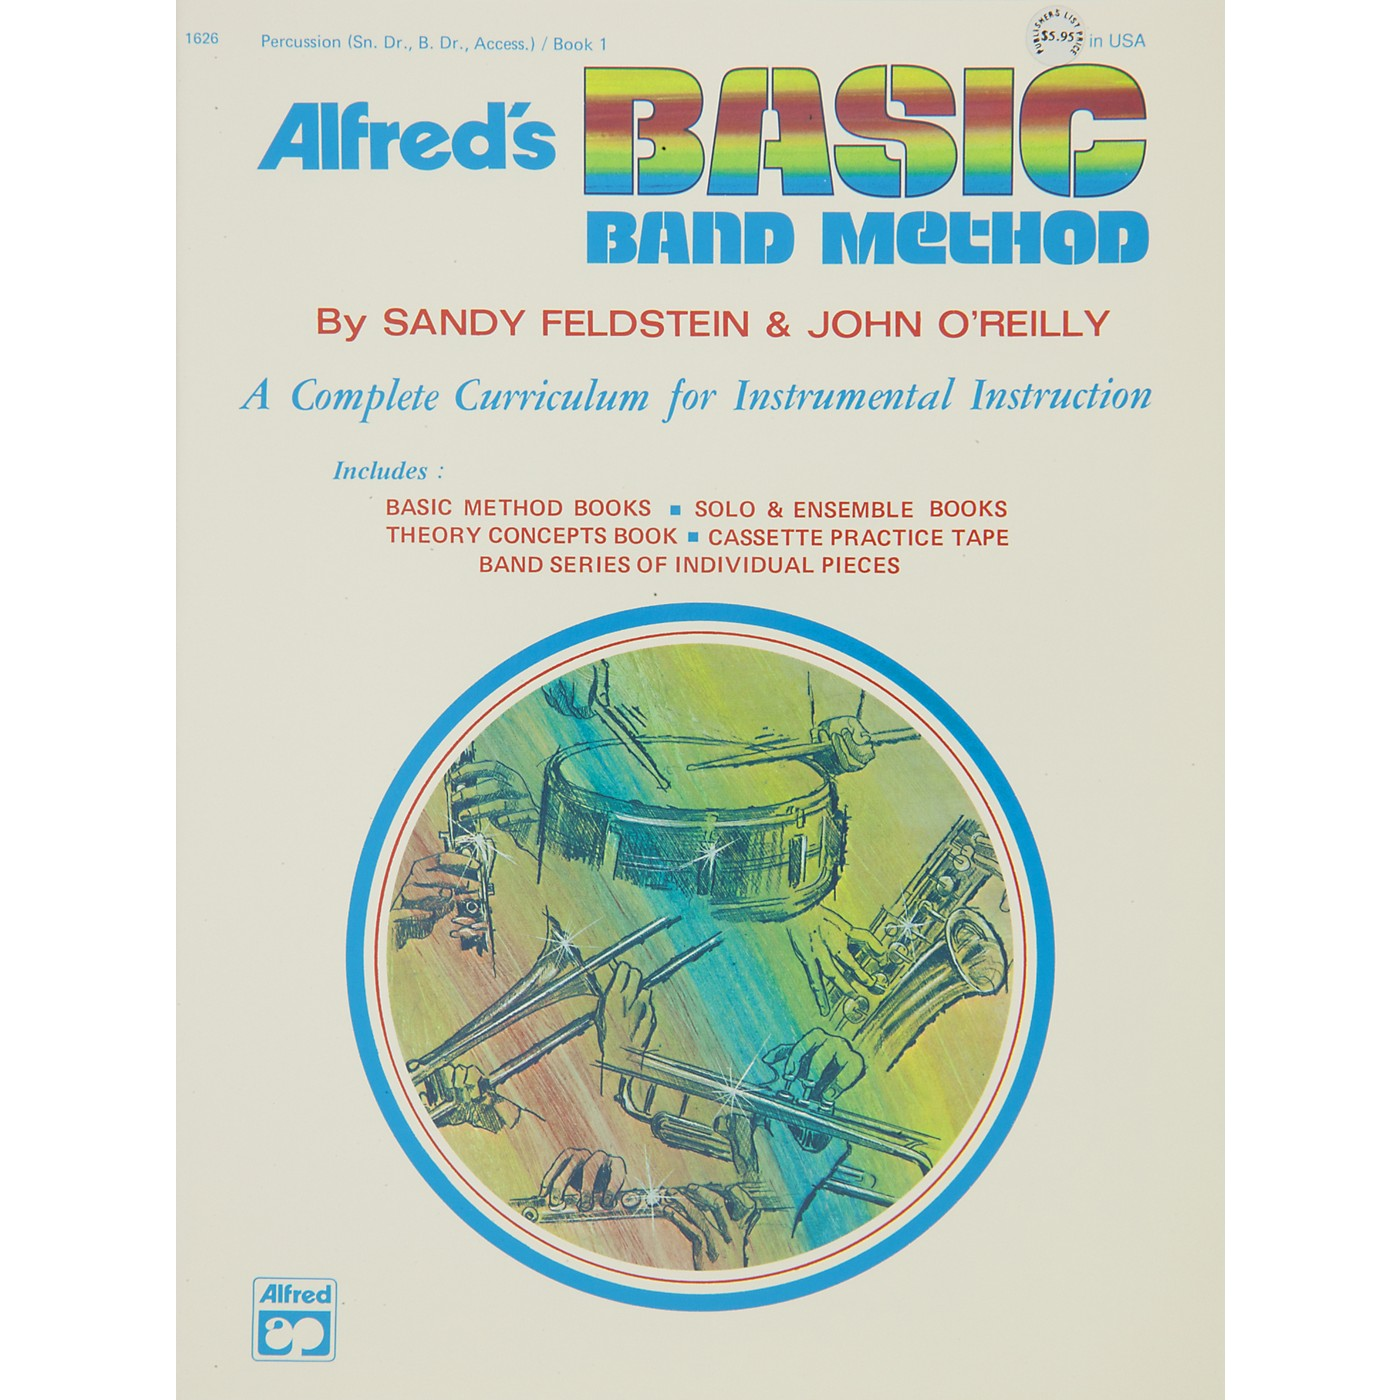 Alfred Alfred's Basic Band Method Book 1 Percussion (Snare Drum Bass Drum & Accessories) thumbnail